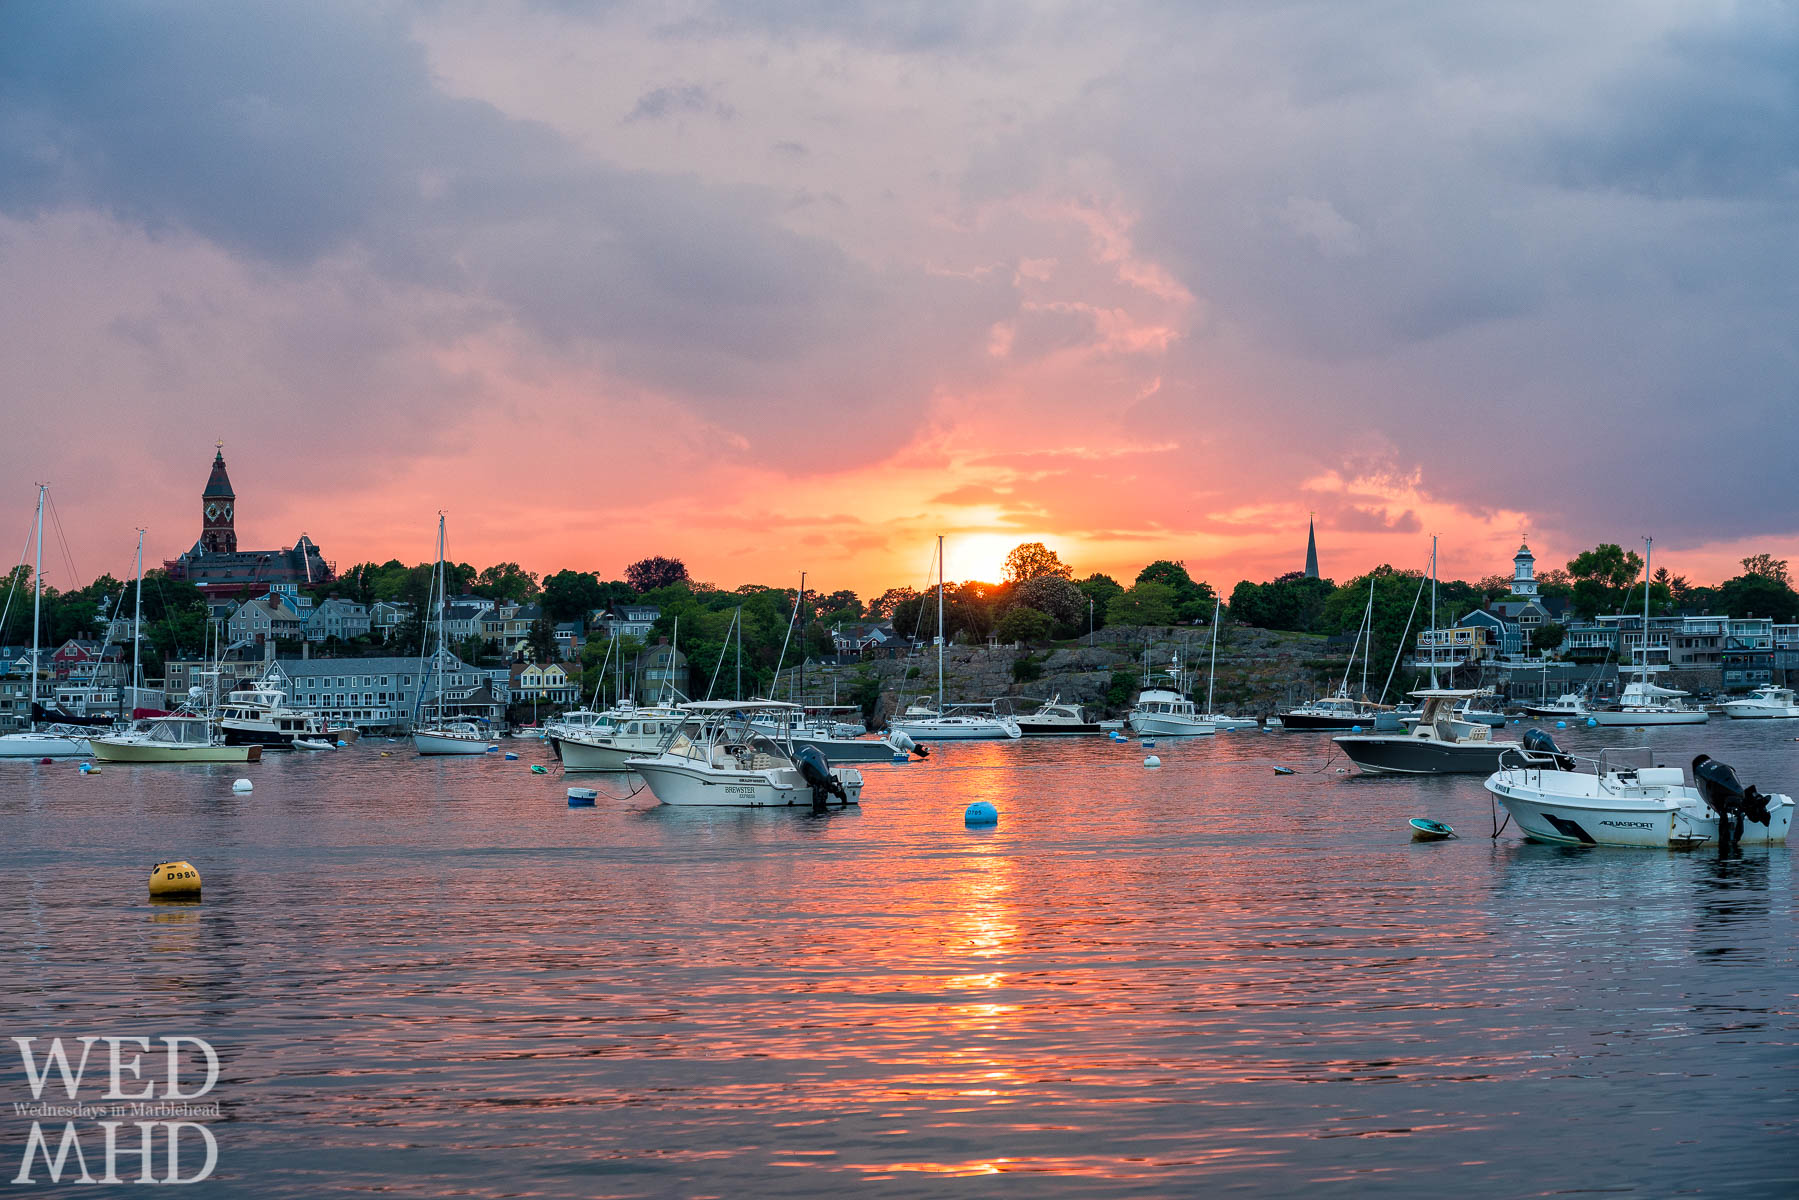 The sun sets behind Crocker Park and casts brilliant light onto the calm waters of Marblehead Harbor